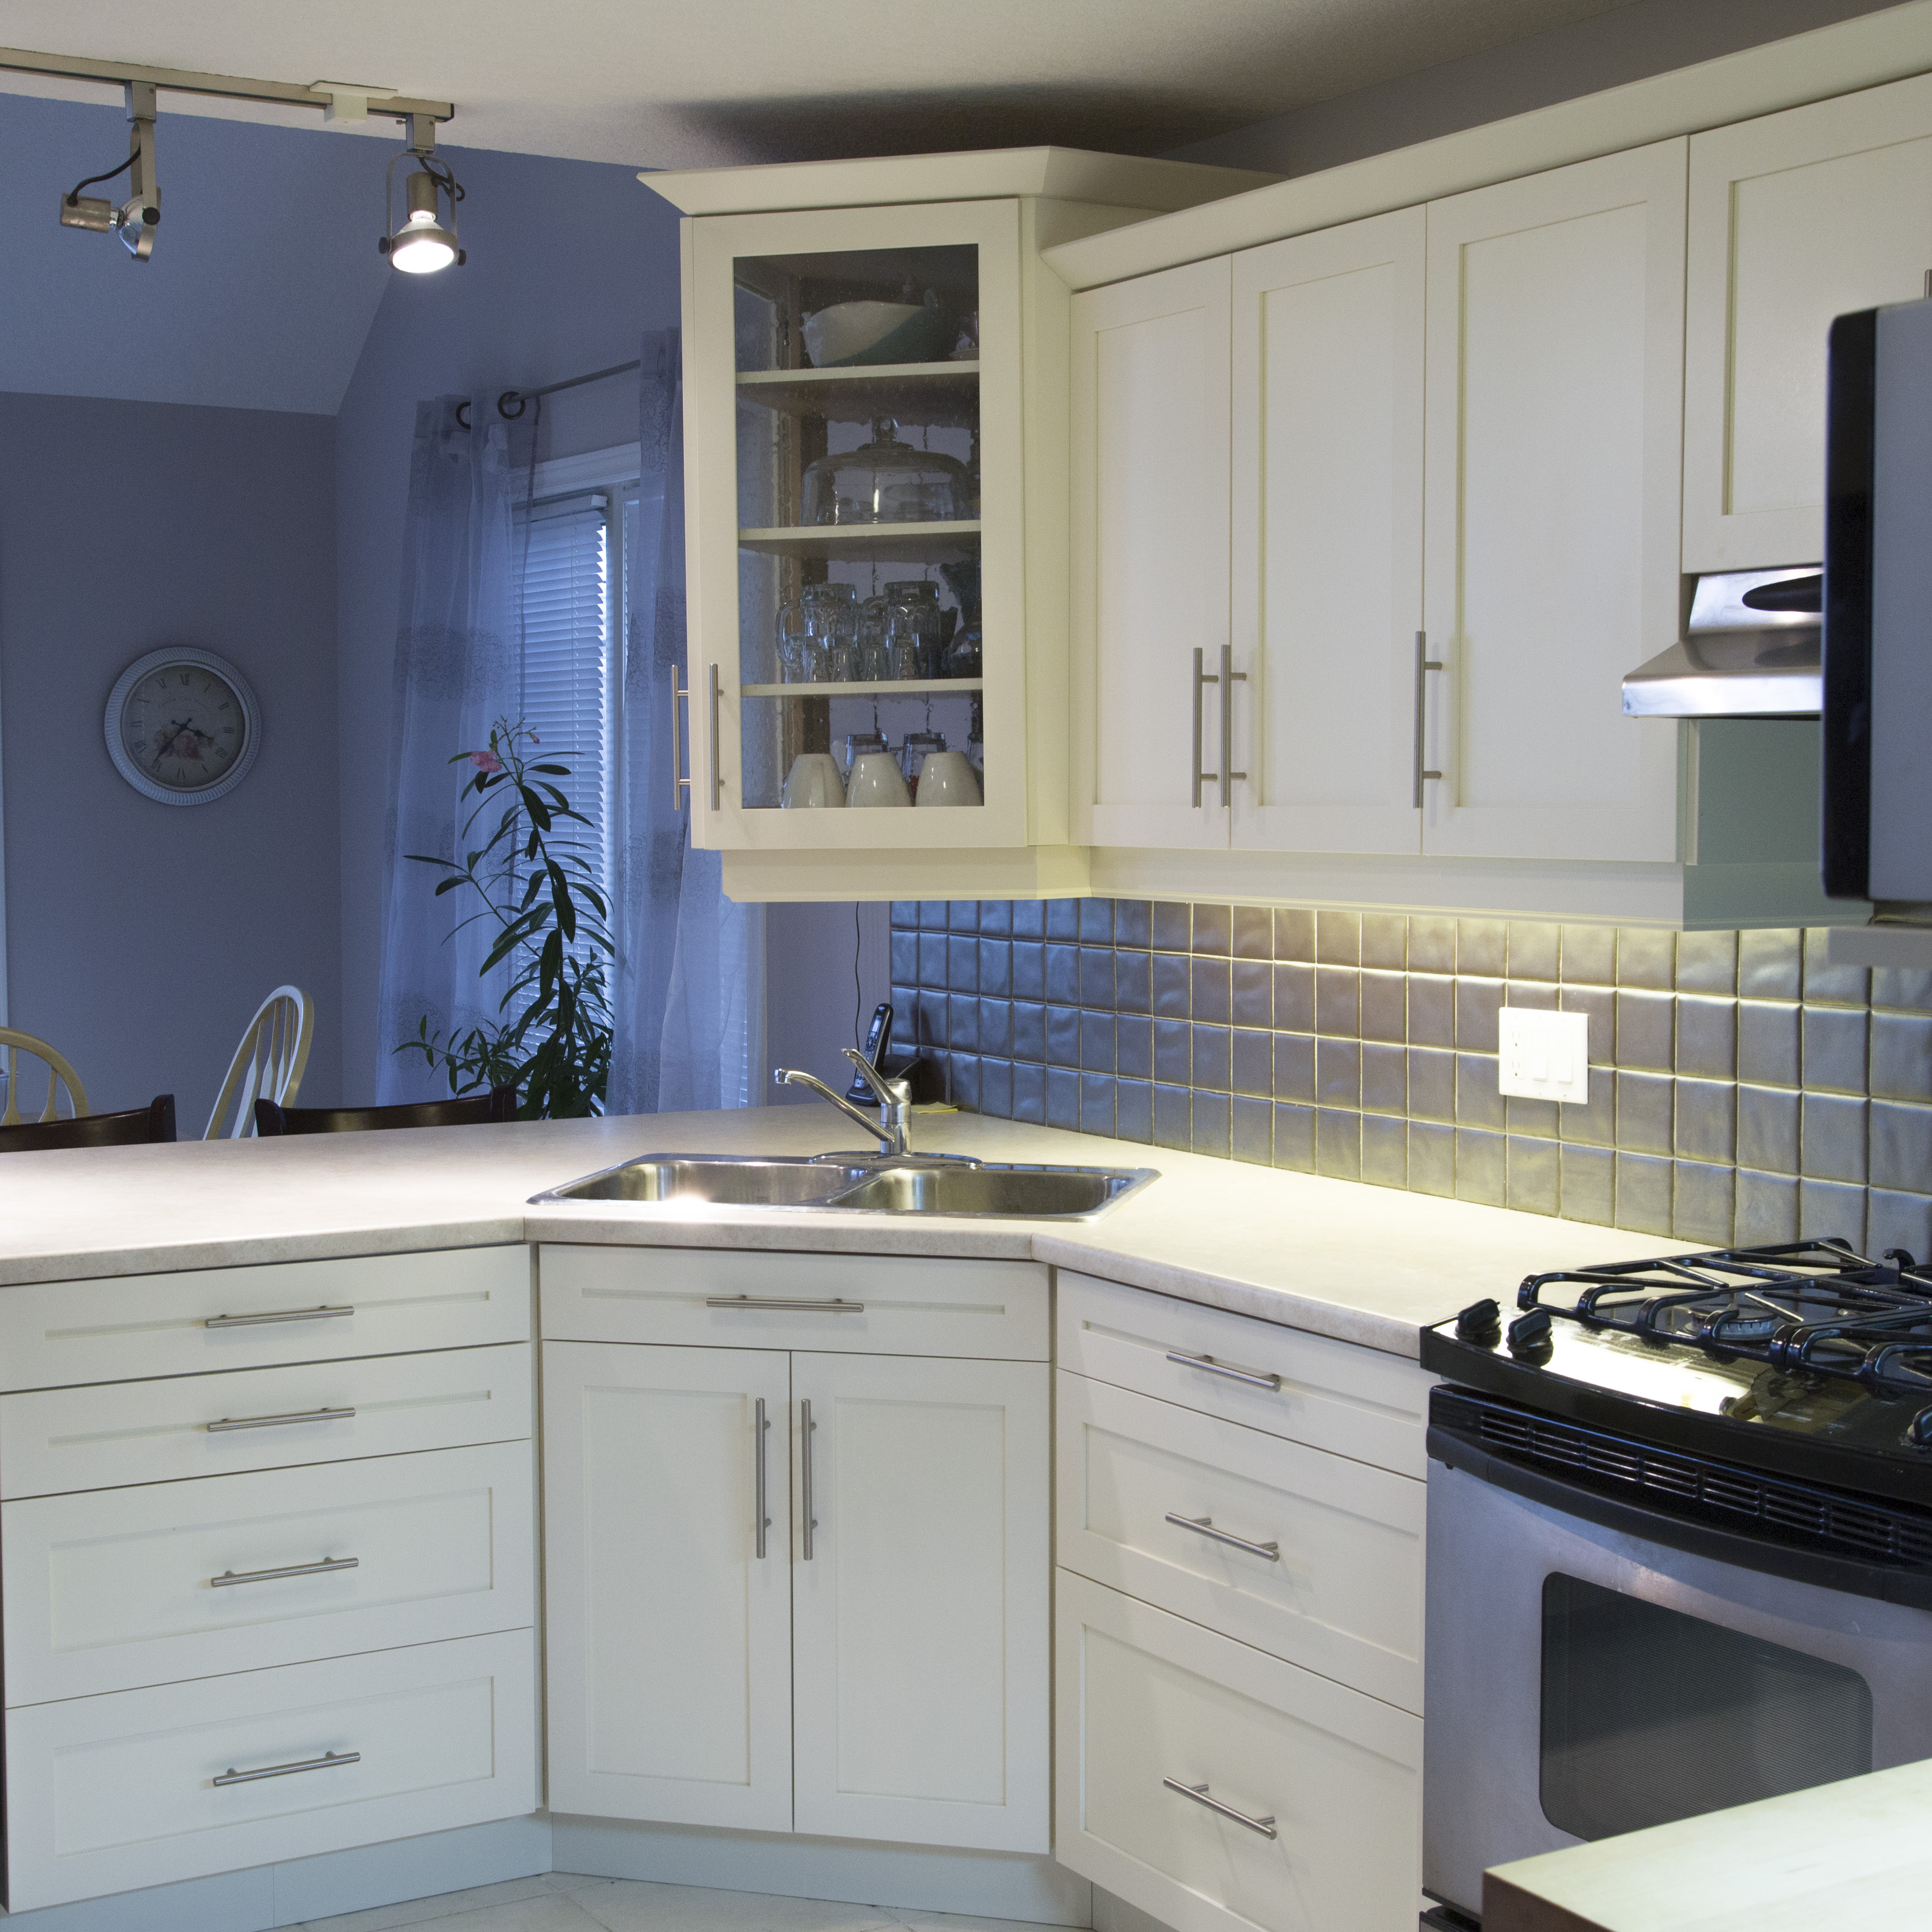 Kitchen Cabinets London Ontario: London Ontario Kitchen Cabinet Refacing